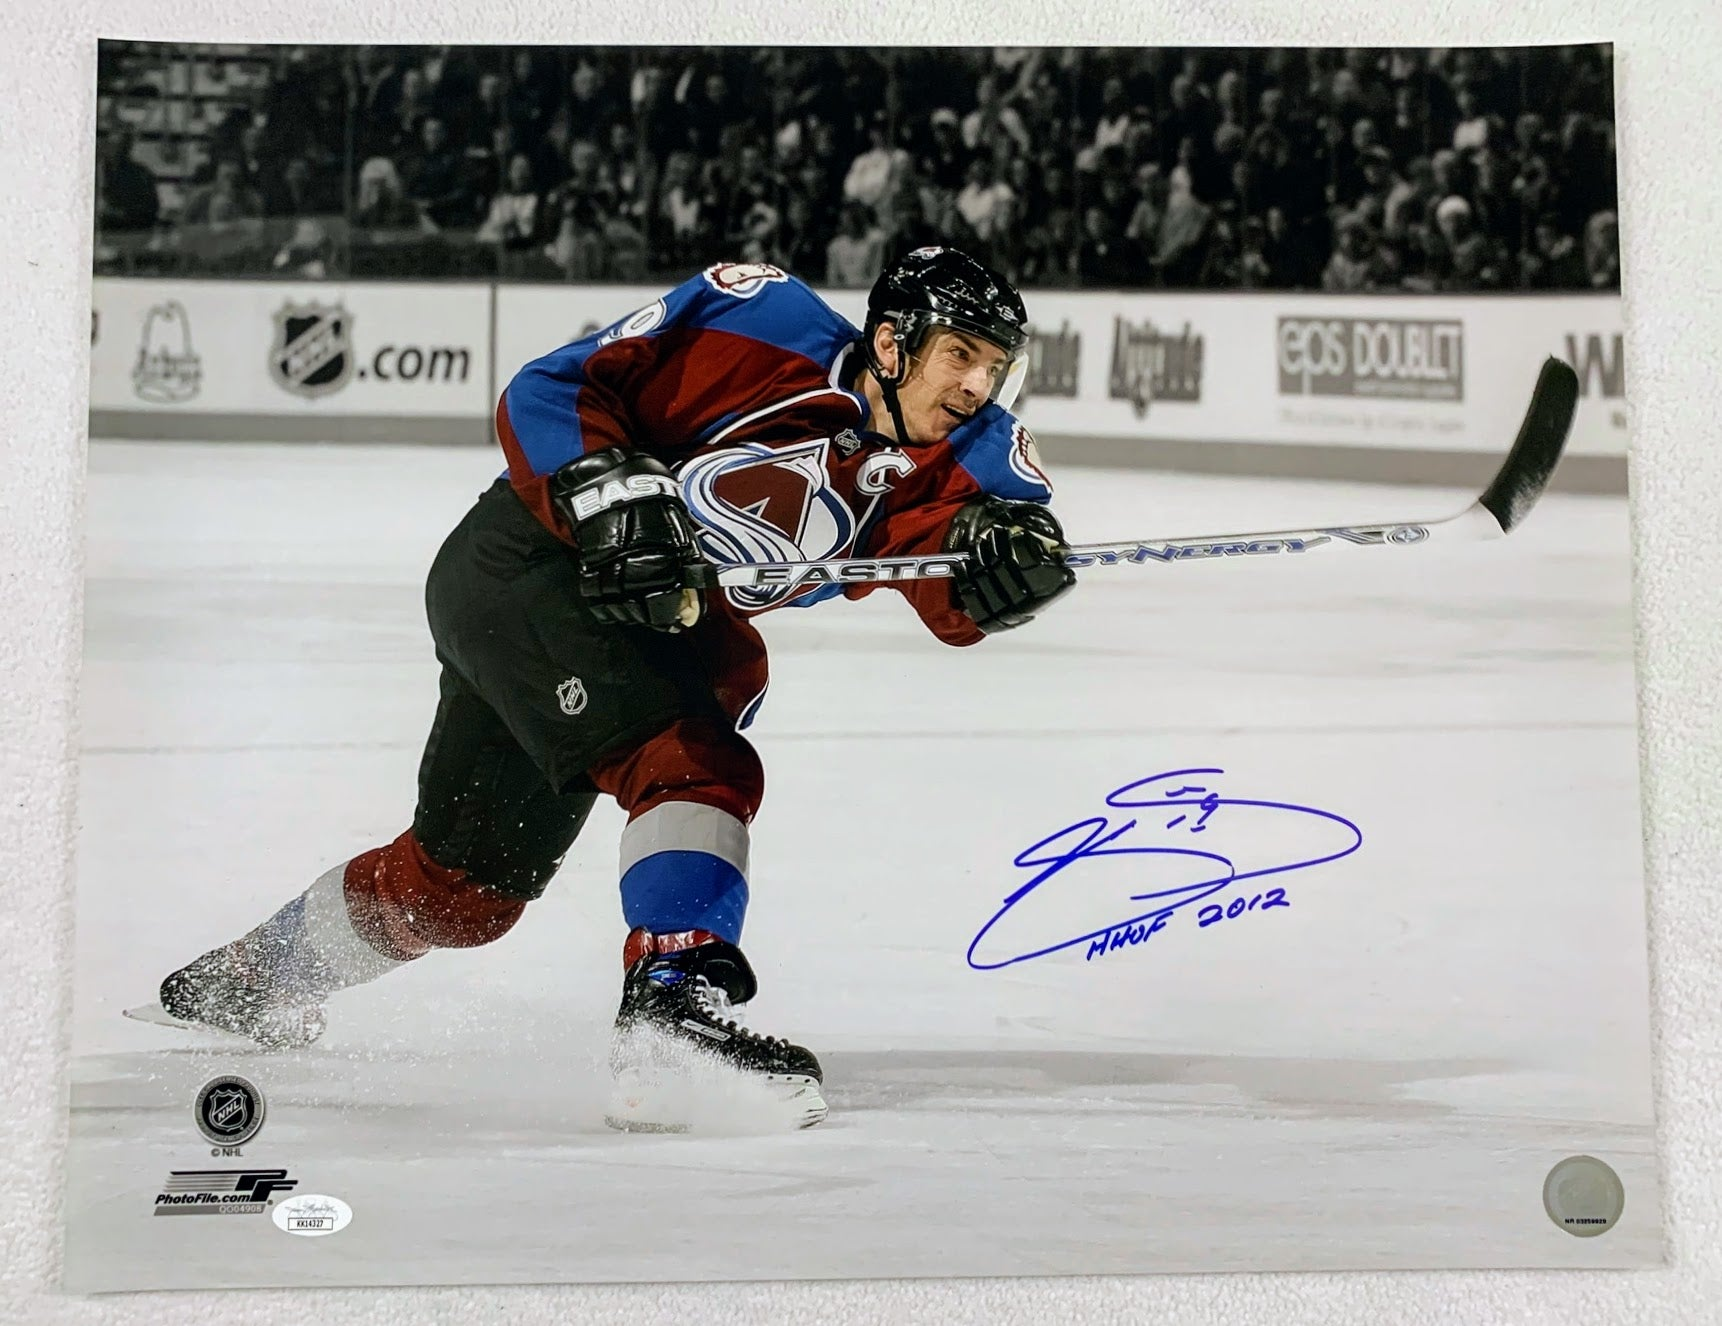 Joe Sakic 16x20 Autographed Photo HHOF Inscription LSM JSA COA